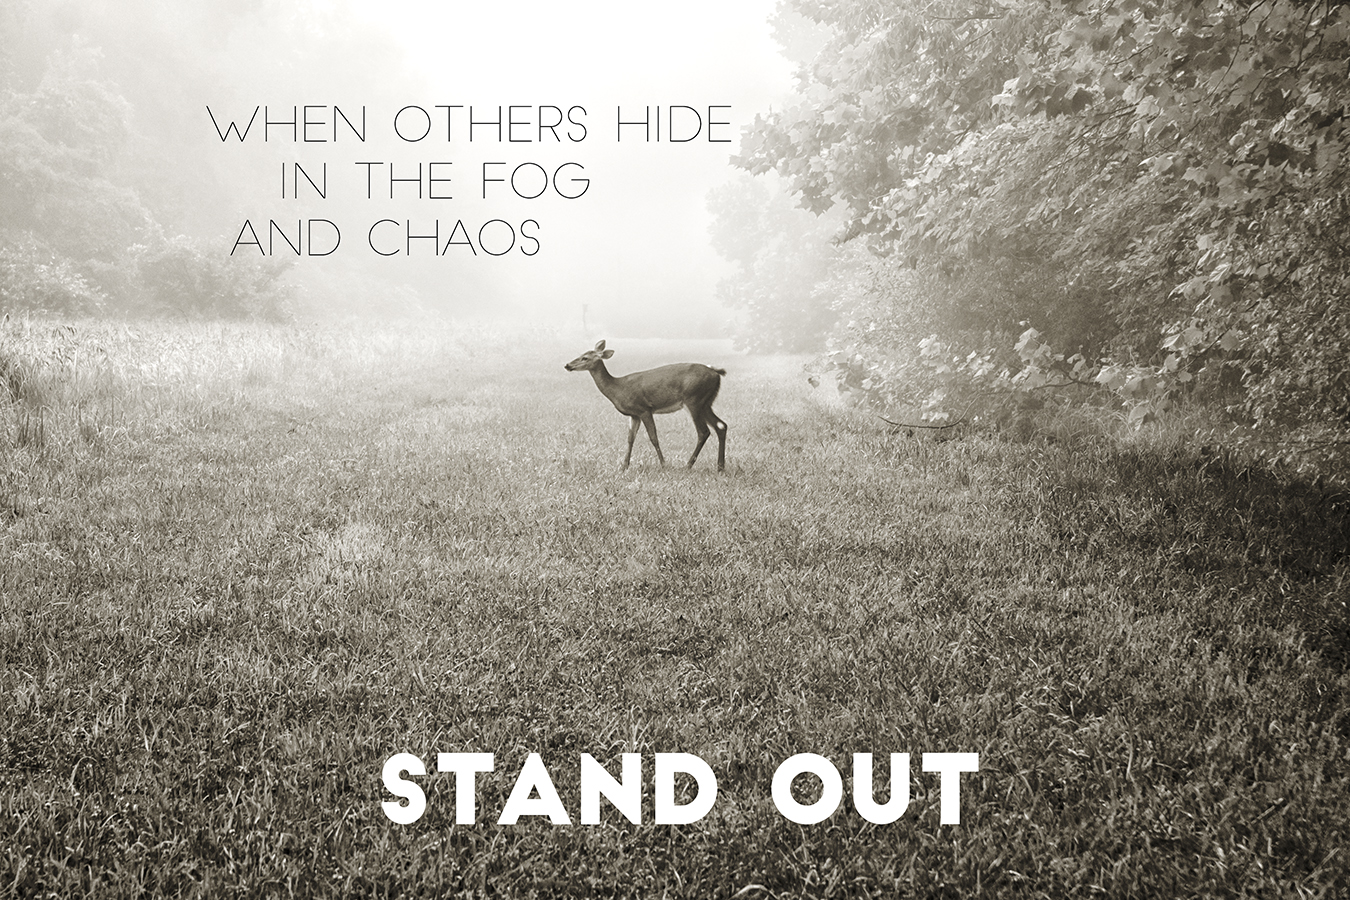 charles i. letbetter - stand out